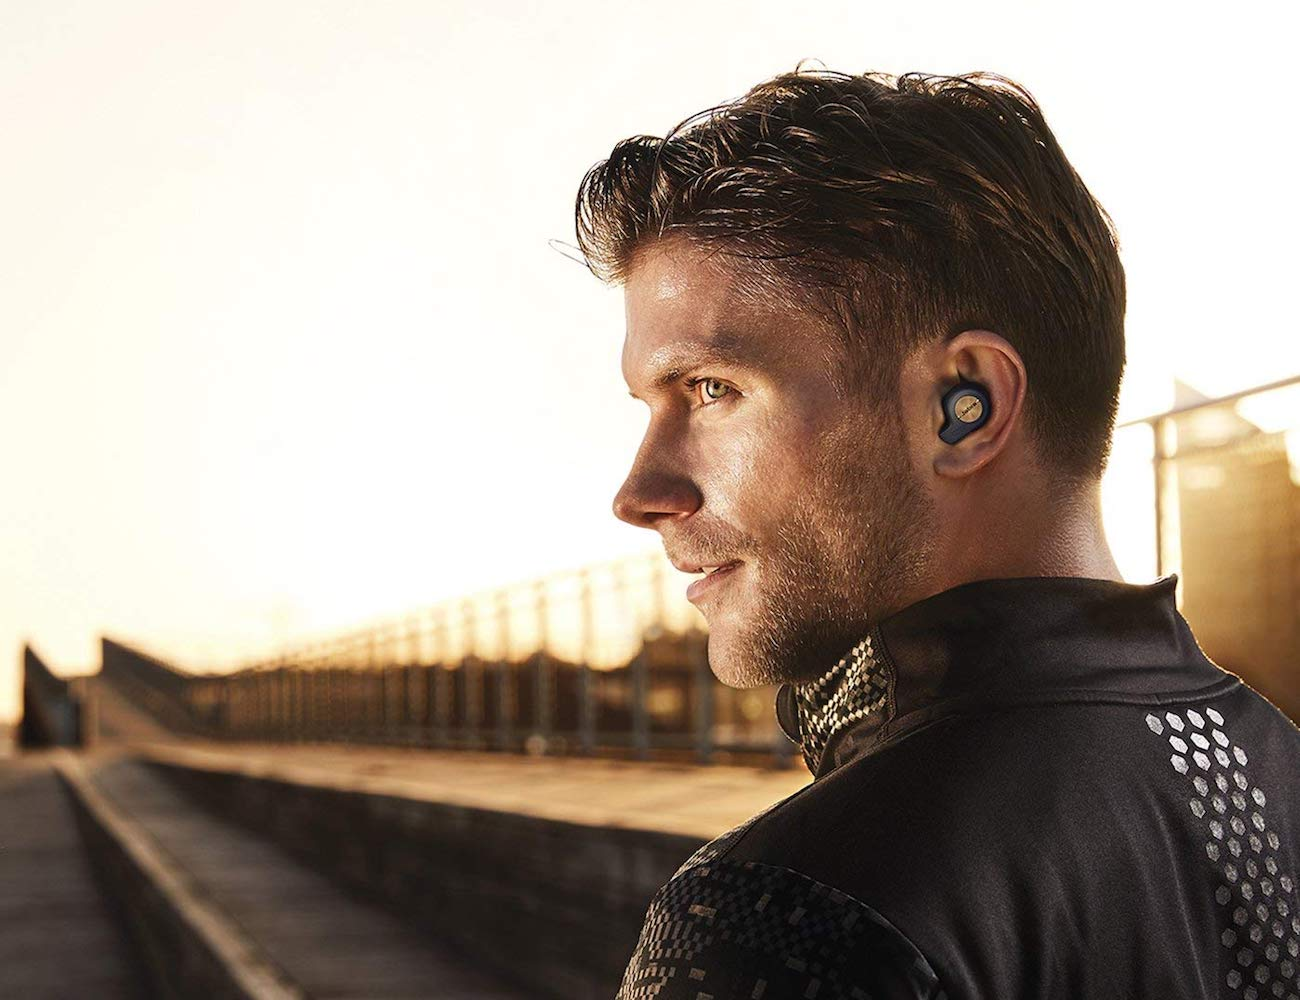 Jabra Elite Active 65t True Wireless Sports Earbuds